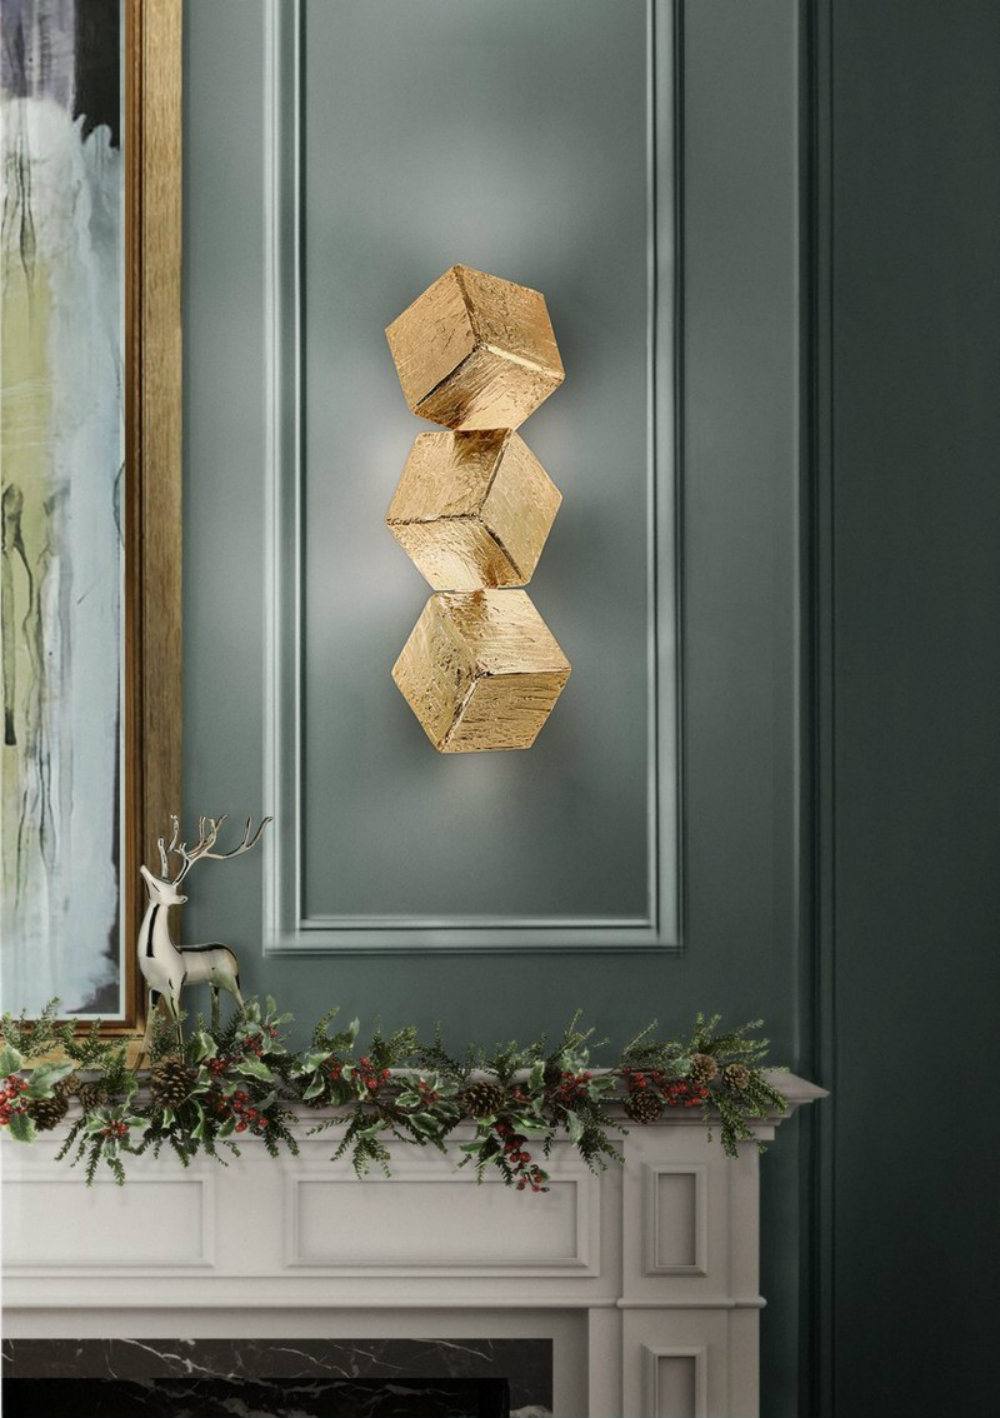 Celebrate Christmas With These Incredible Furniture Pieces For Your Living Room furniture pieces Celebrate Christmas With These Incredible Furniture Pieces For Your Living Room Celebrate Christmas With These Incredible Furniture Pieces For Your Living Room 5